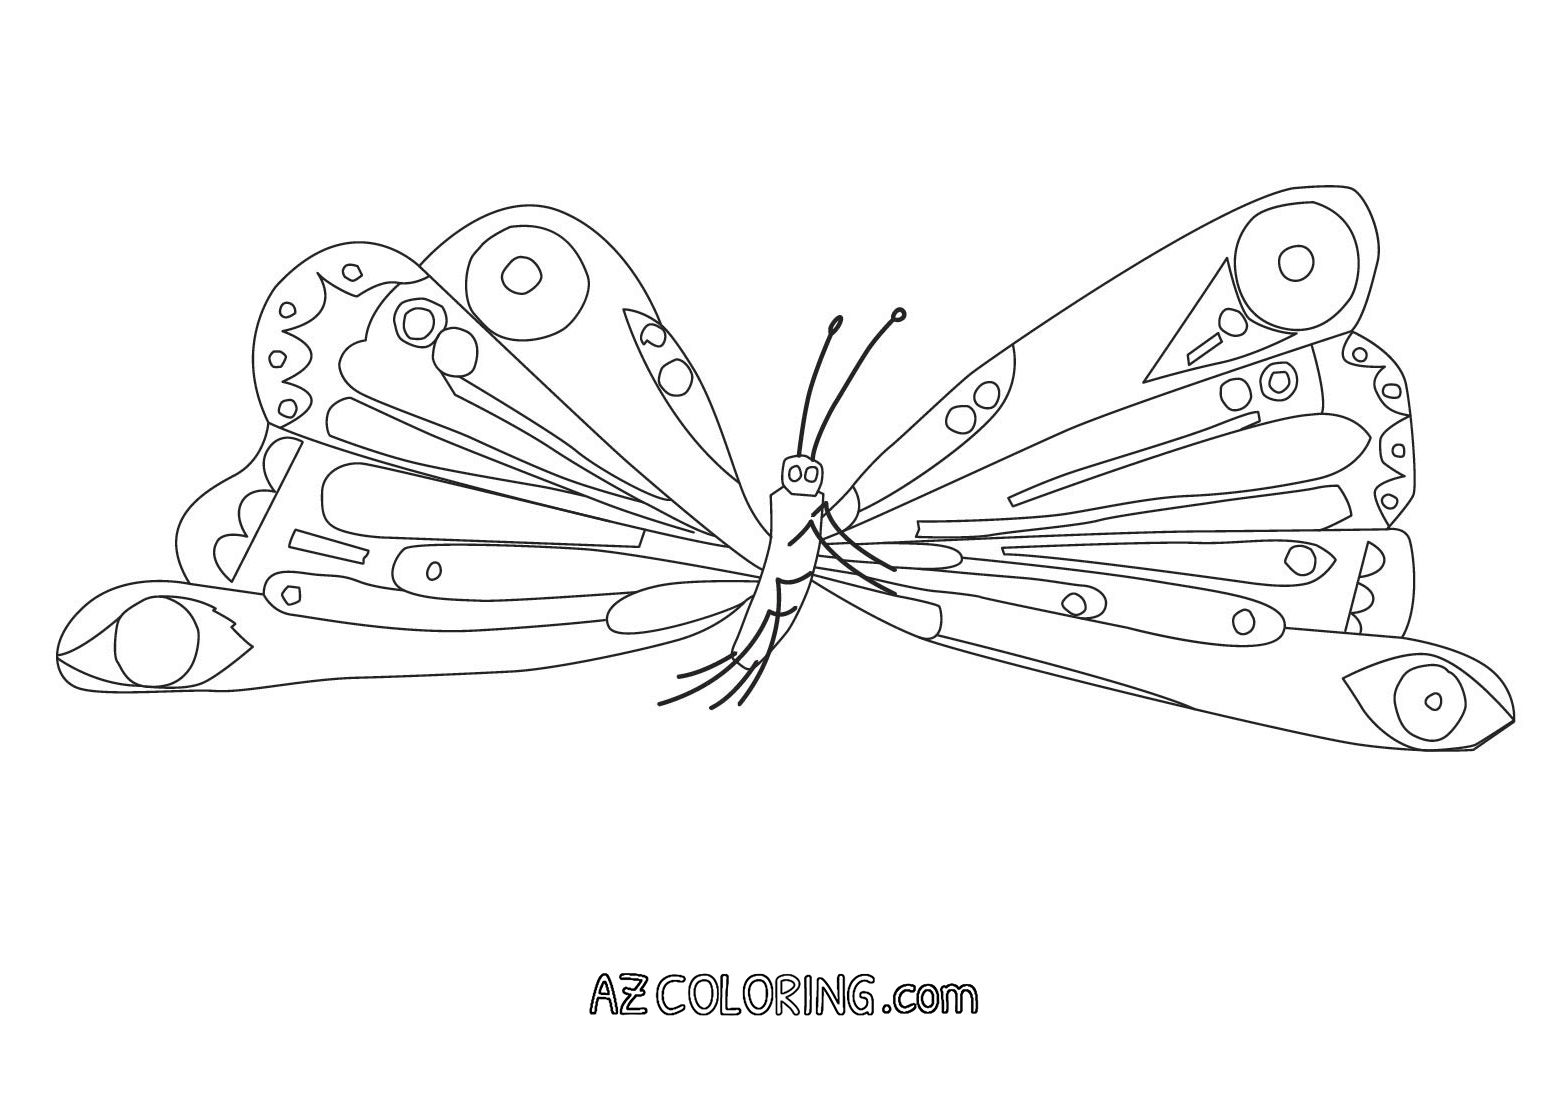 Hungry Caterpillar Coloring Pages Very Hungry Caterpillar Coloring Pages Printables Glandigoart Entitlementtrap Com Very Hungry Caterpillar Butterfly Coloring Page Mermaid Coloring Pages